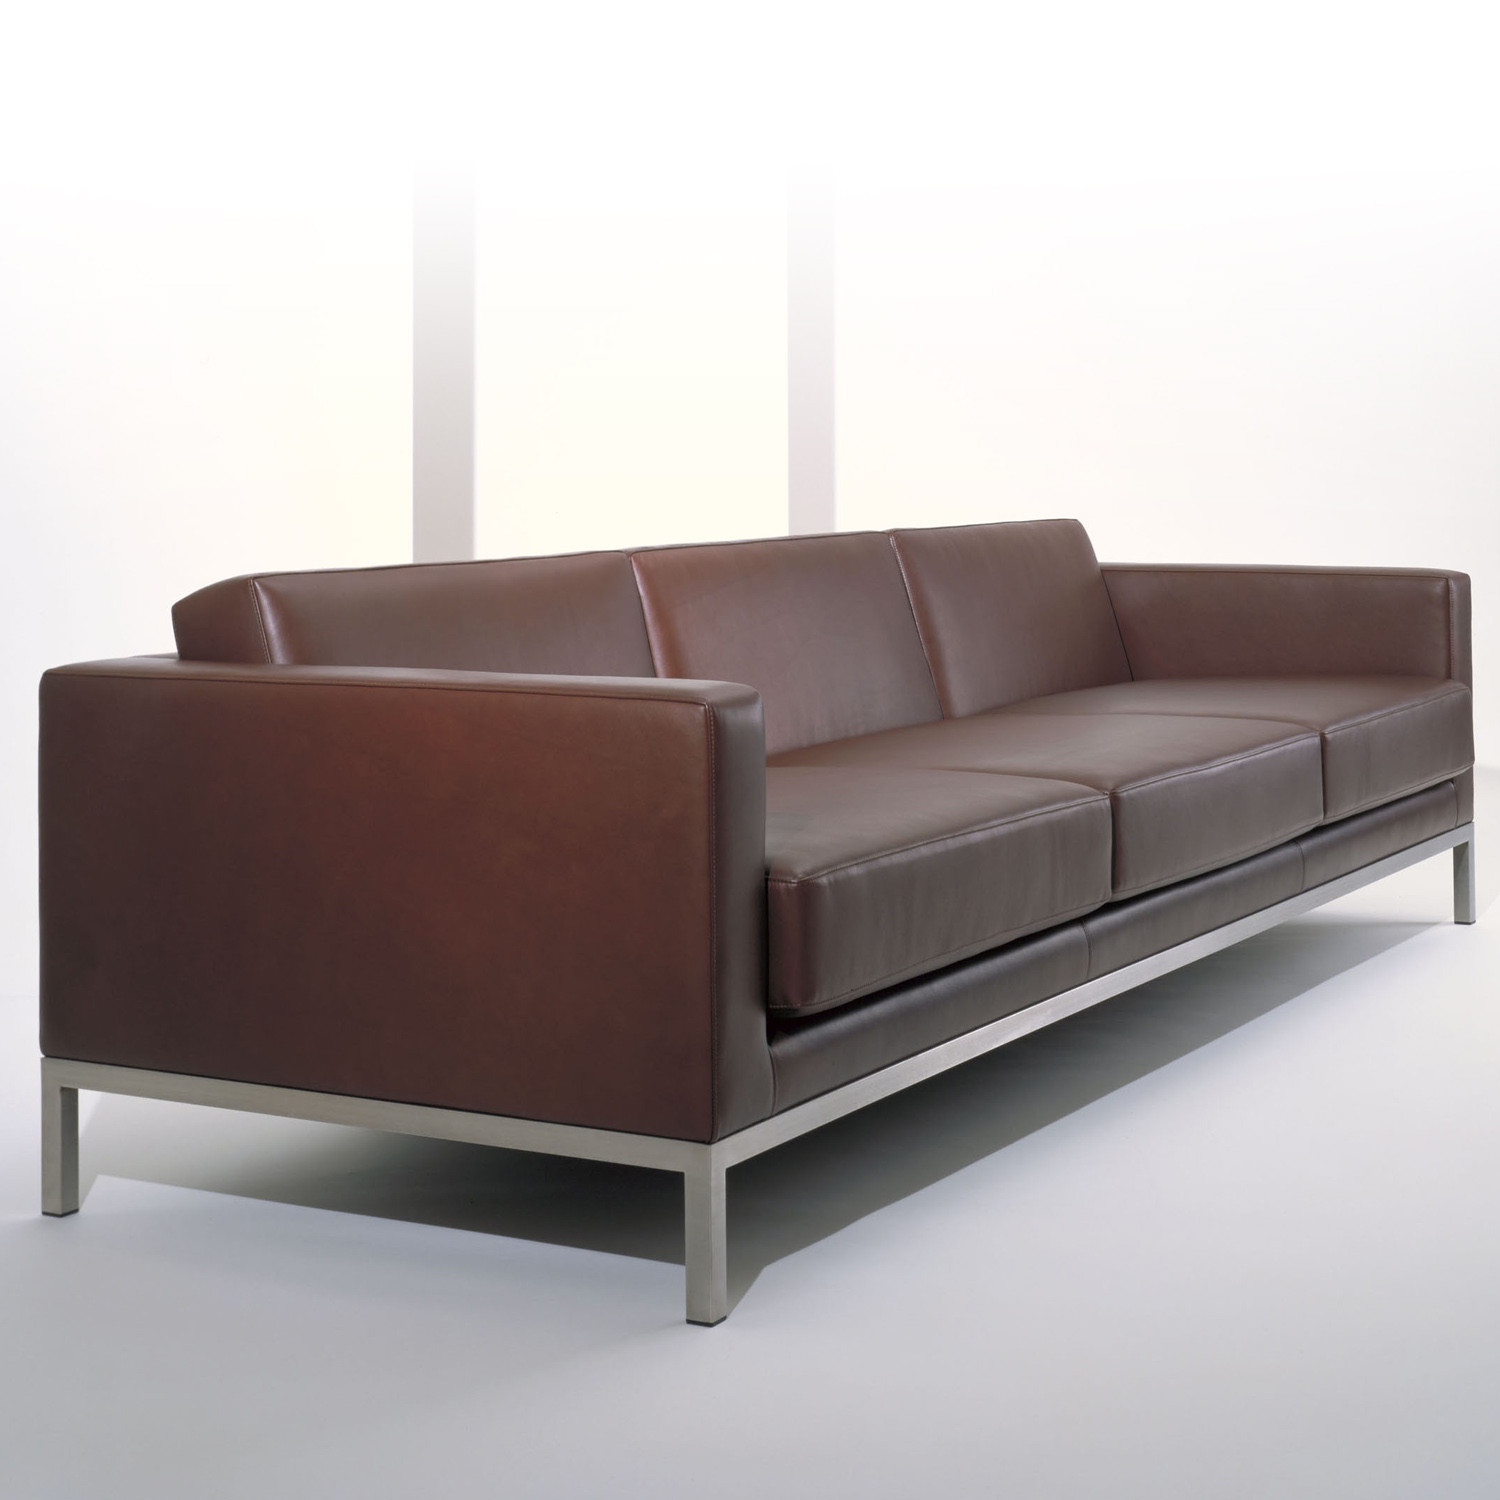 HM26 Three-Seater Sofa in brown leather upholstery